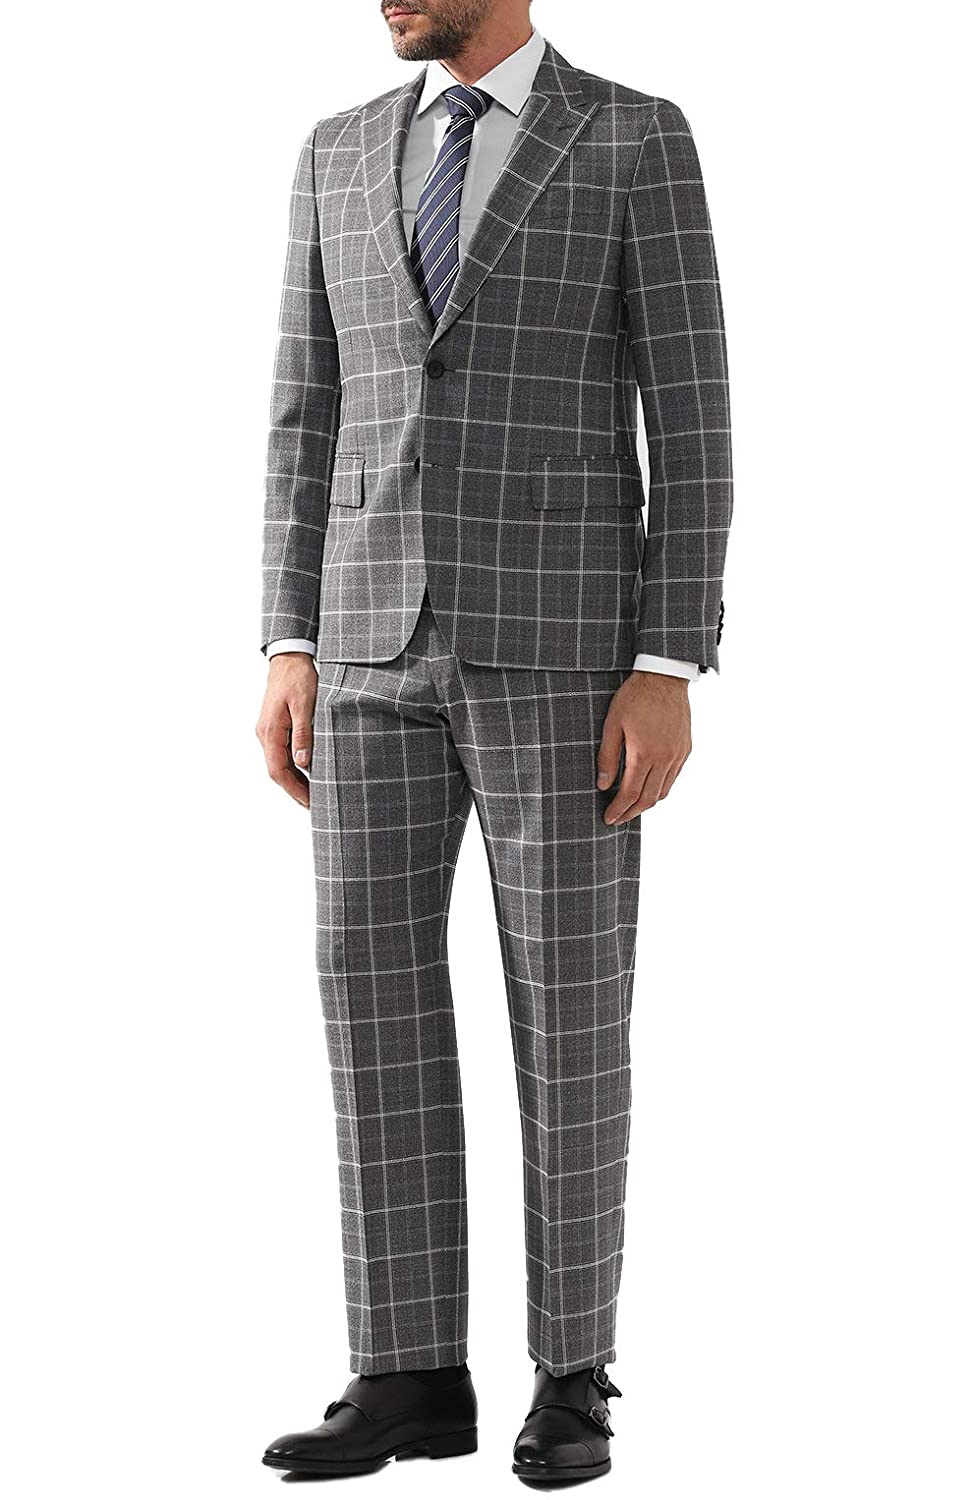 4702e3f1 Amazon.com: Hugo Boss Men's 'Sarlo/Petrow' Grey Slim Fit Virgin Wool  Checked Suit, Size 38R: Clothing